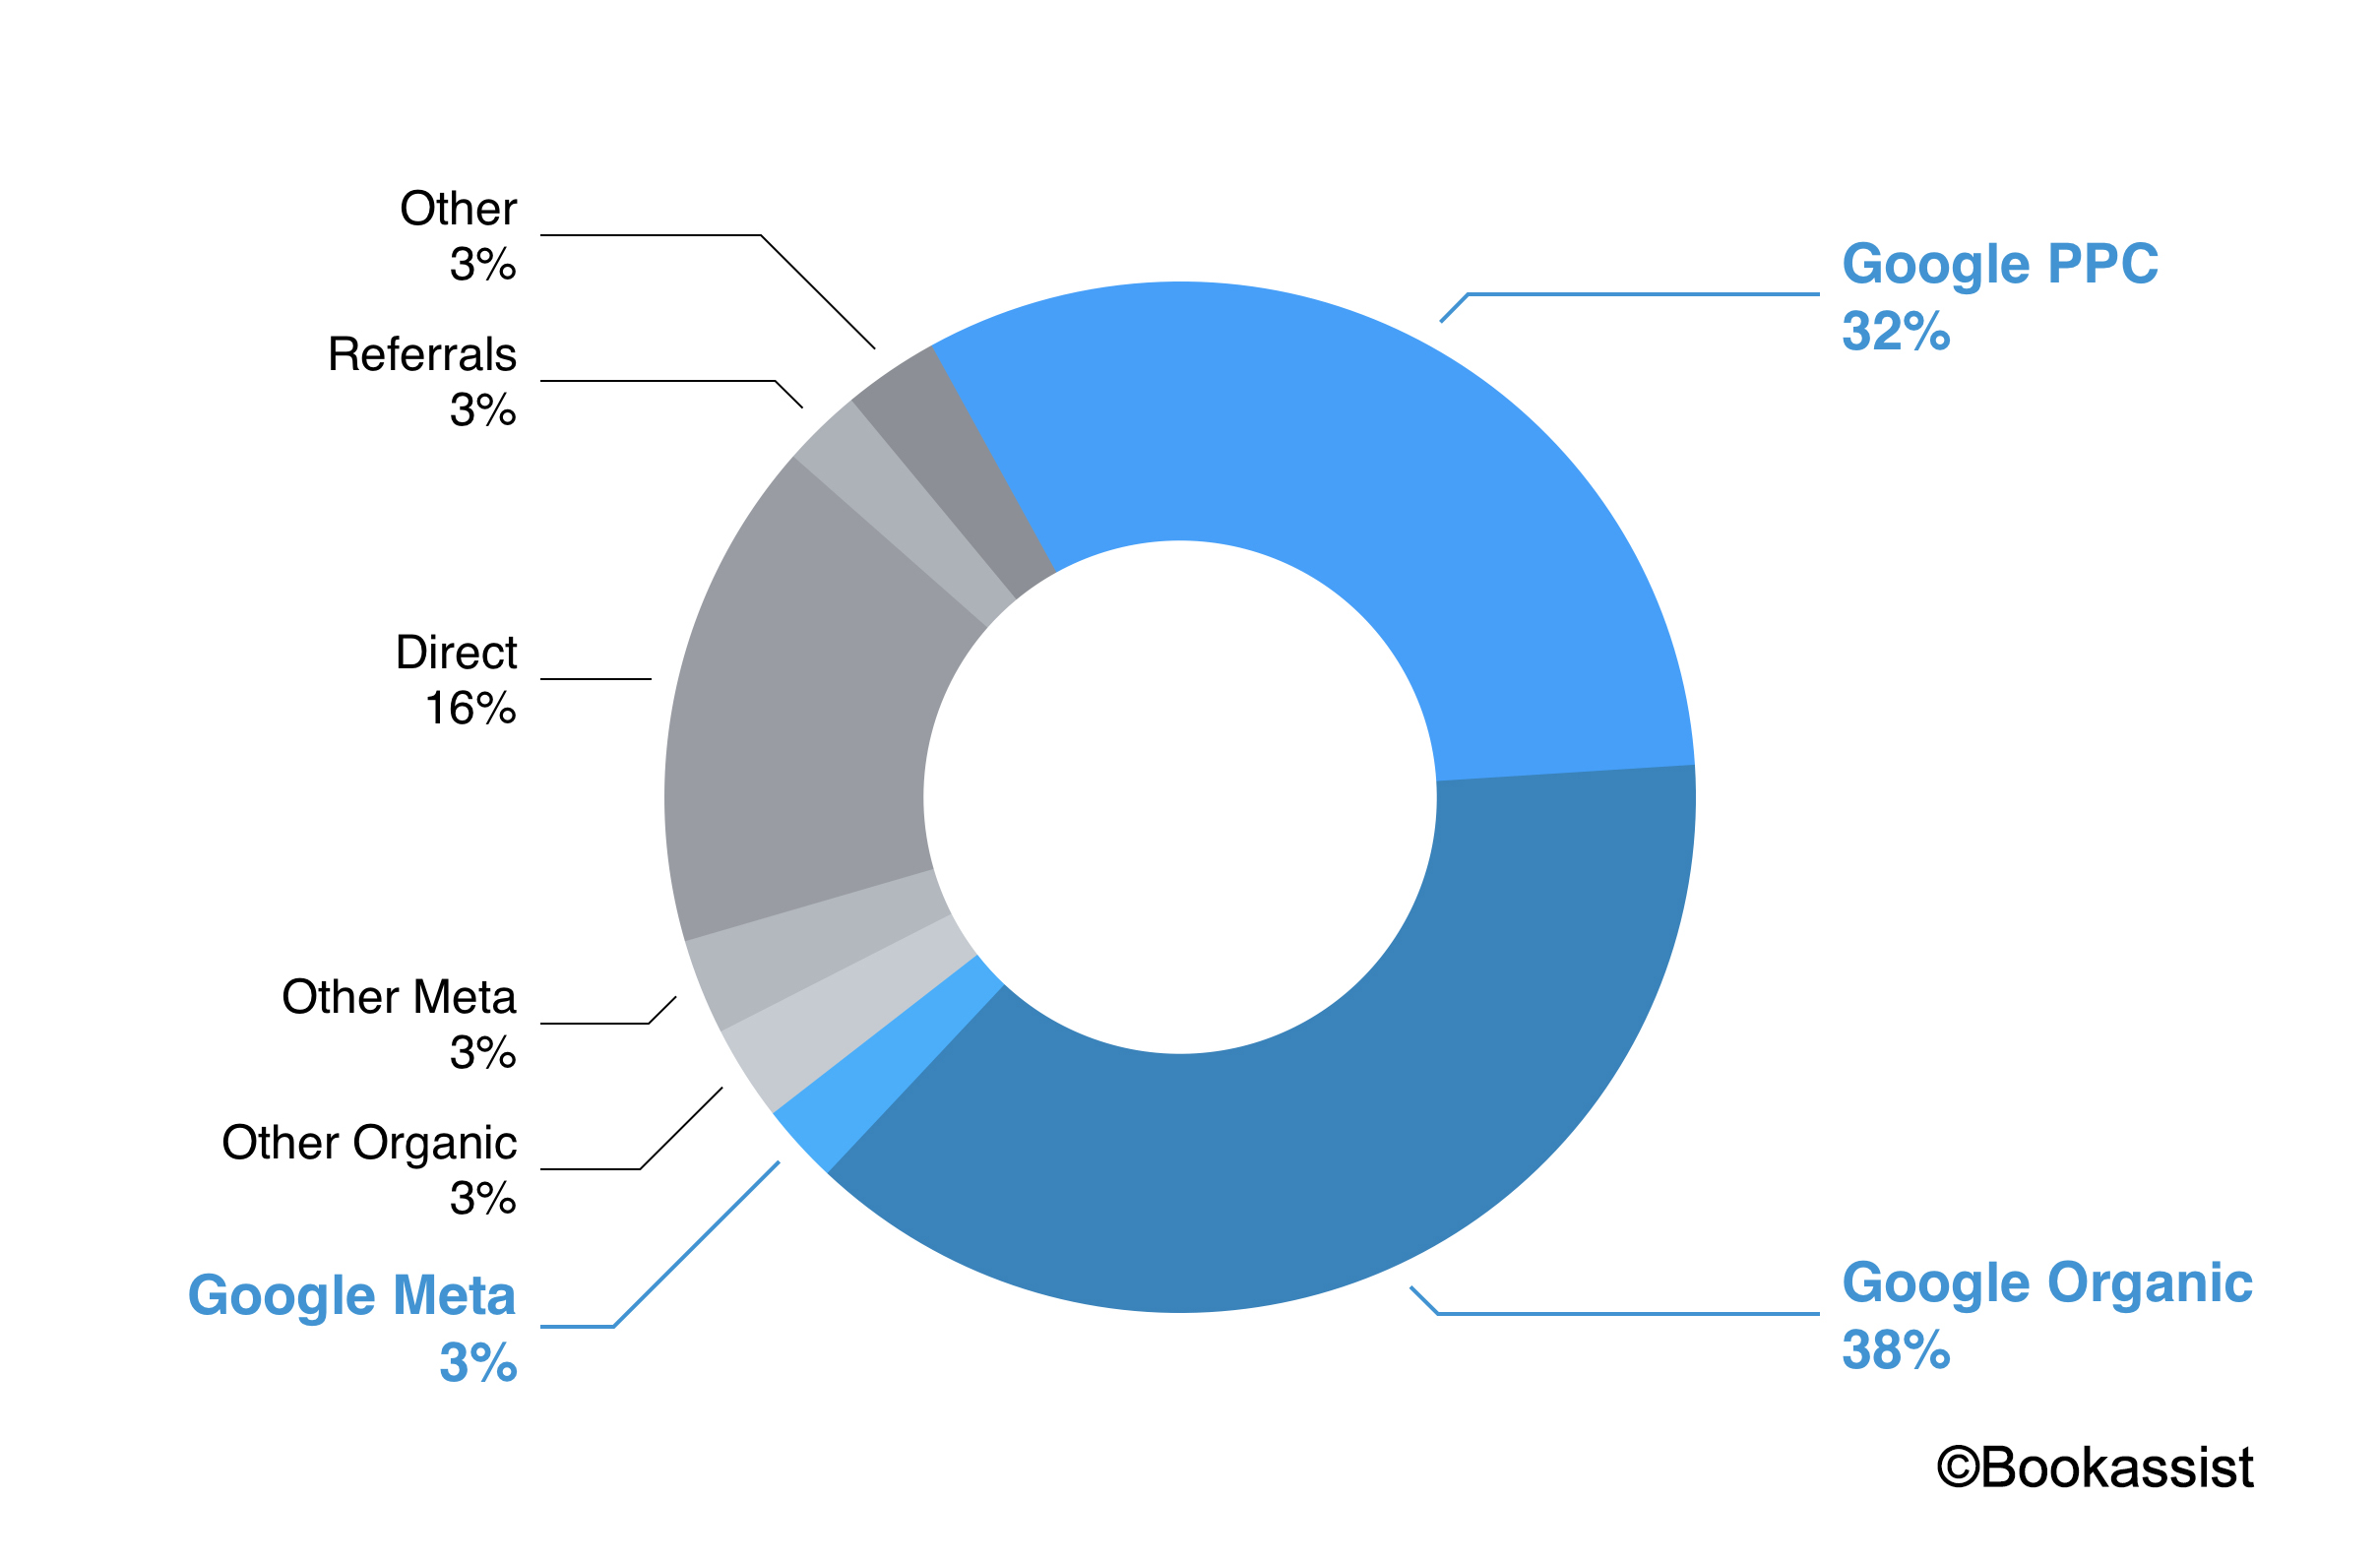 Bookassist data showing Google services delivering 72.5% of overall traffic to hotels in the past 12 months